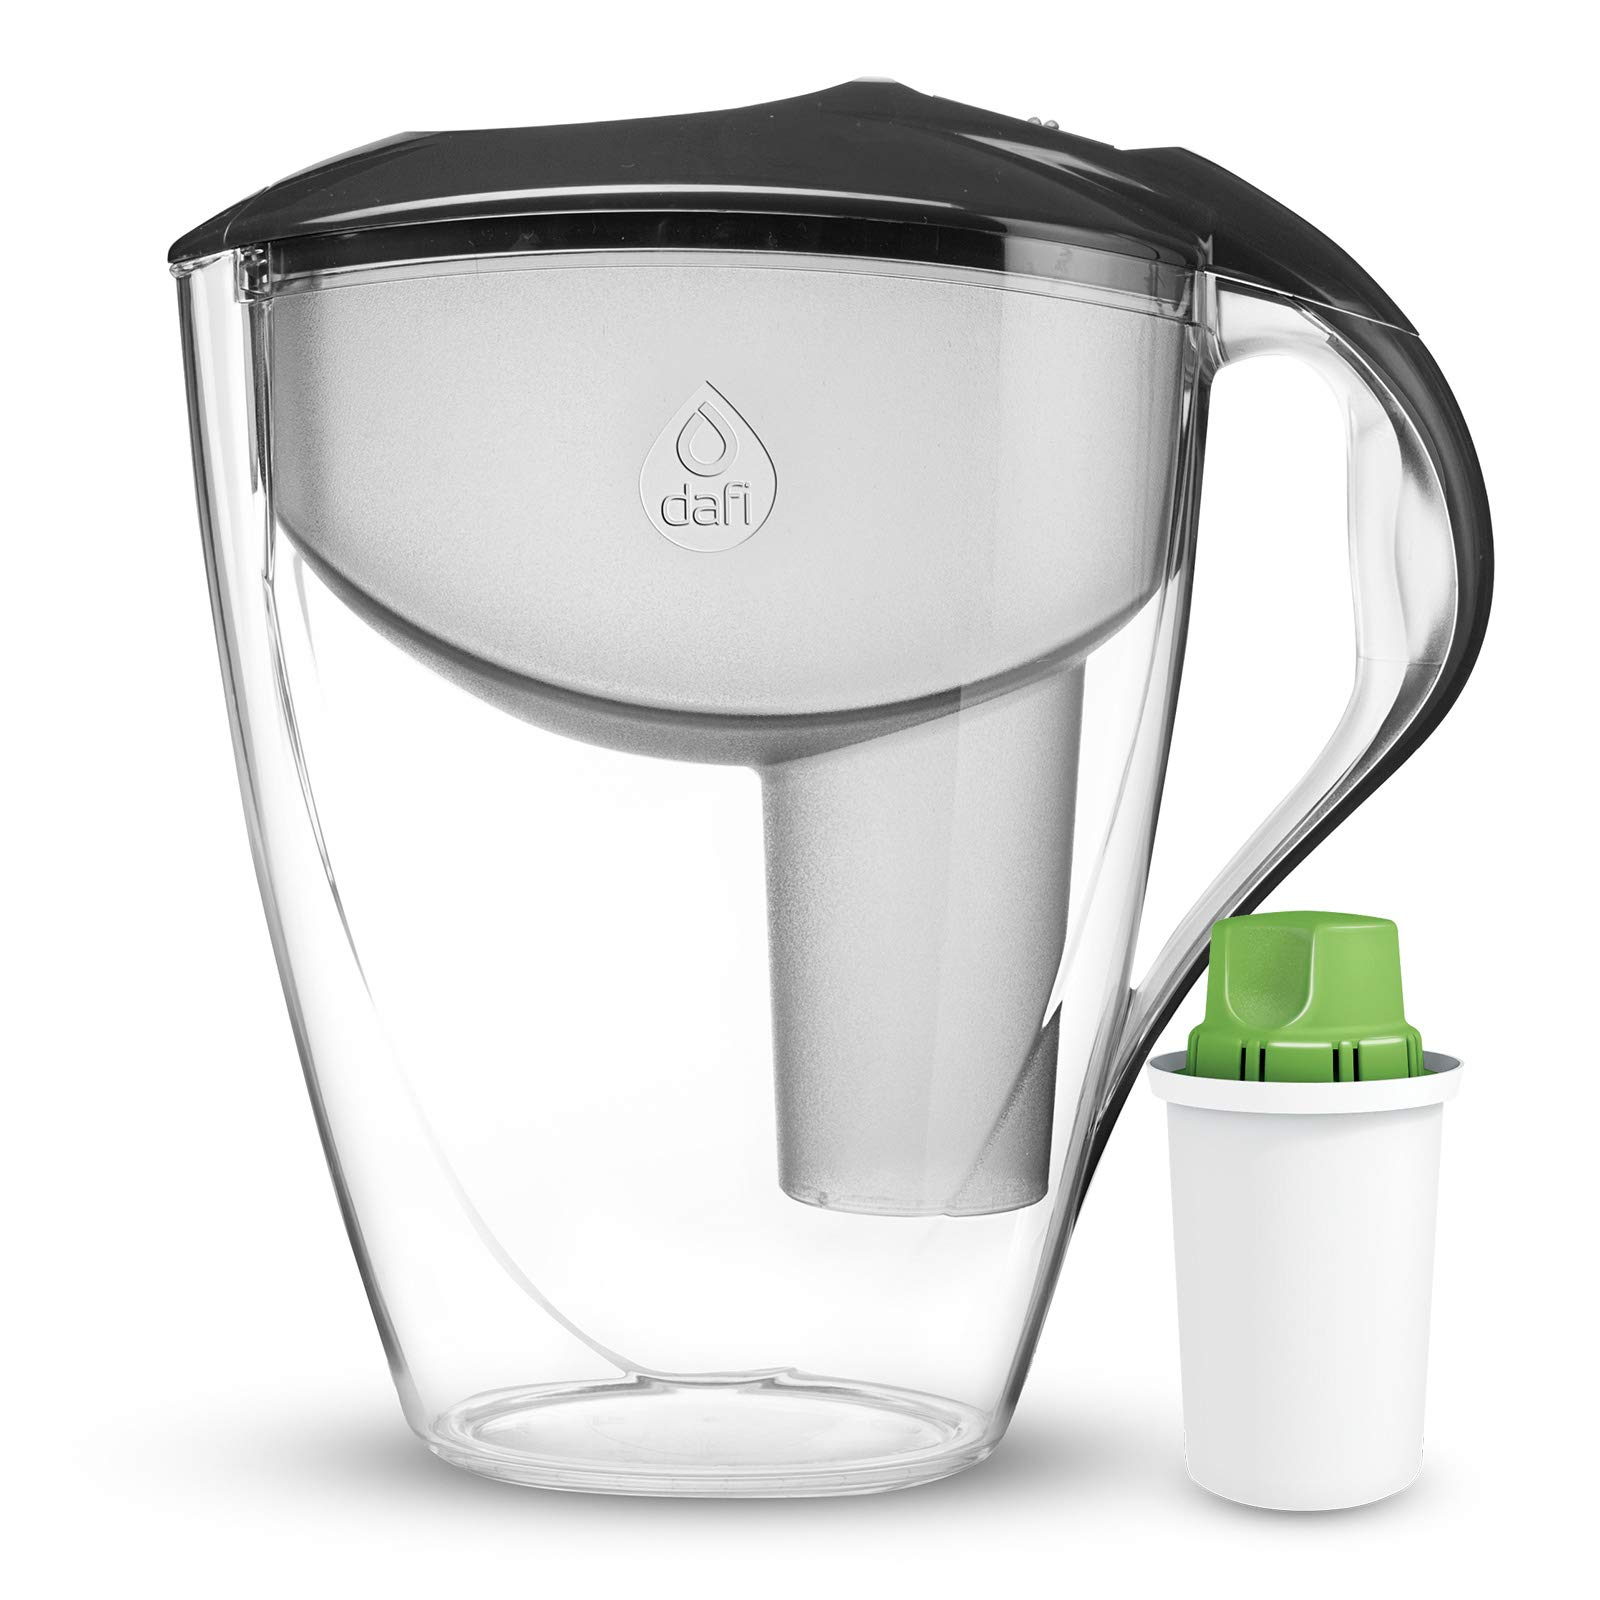 Dafi Alkaline UP Astra LED pH Water Filter Pitcher - Alkaline Water System - Get Water with high pH and Negative OR Potential, BPA Free (Anthracite)